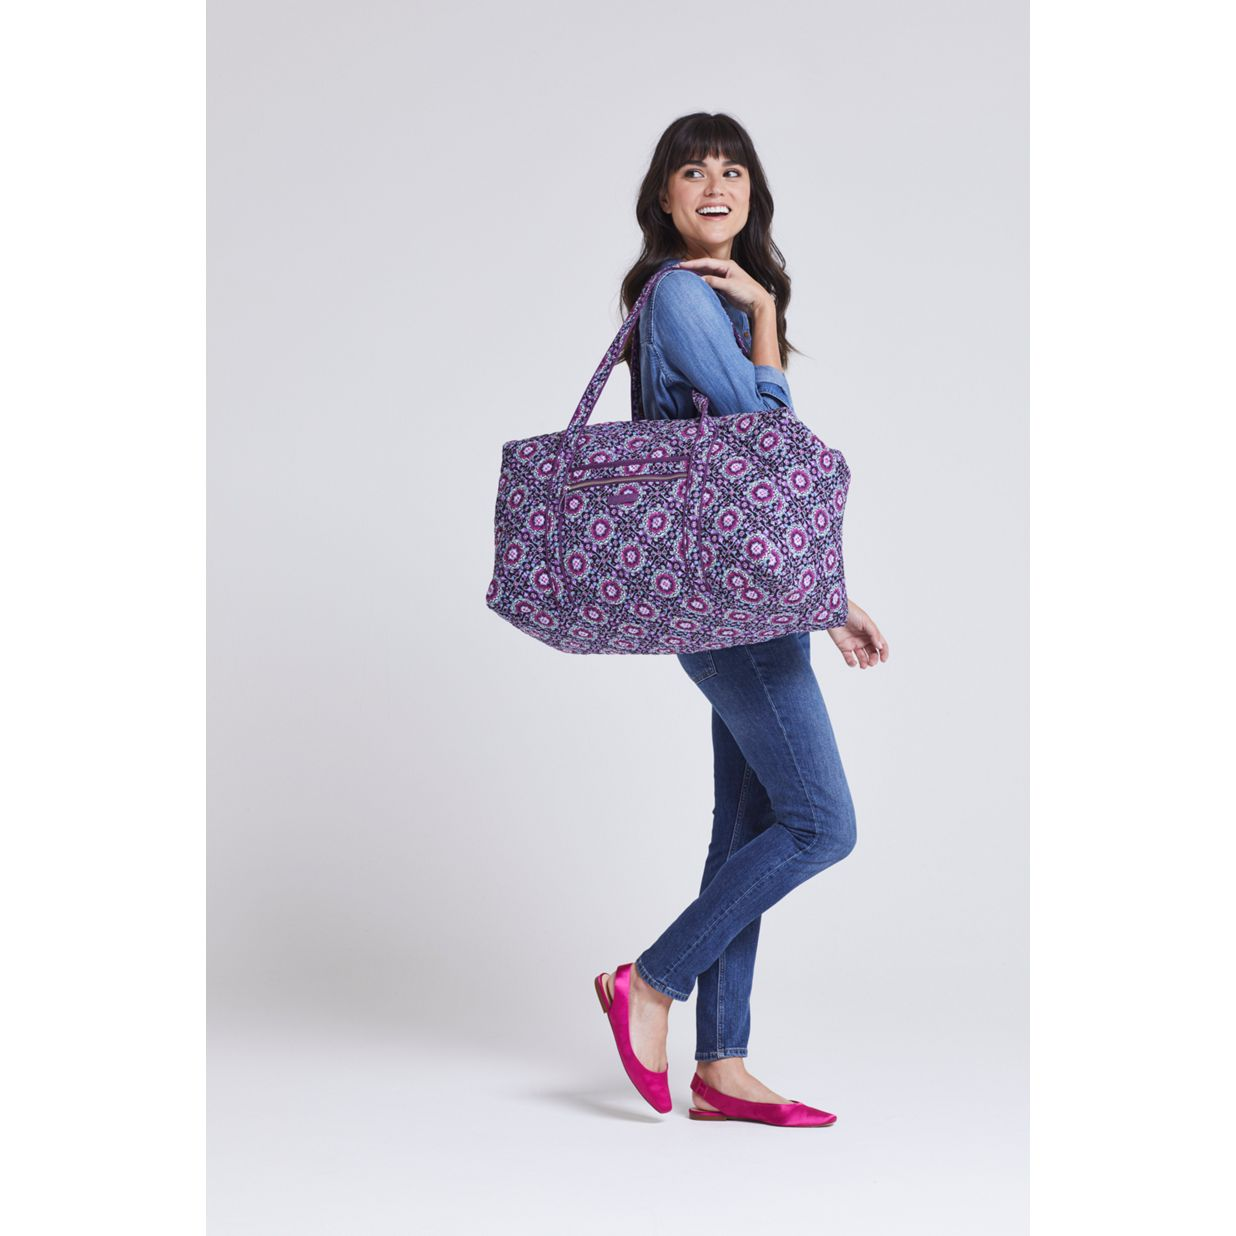 ... Image of Iconic Large Travel Duffel in Lilac Medallion ... 3cde1e2abce43